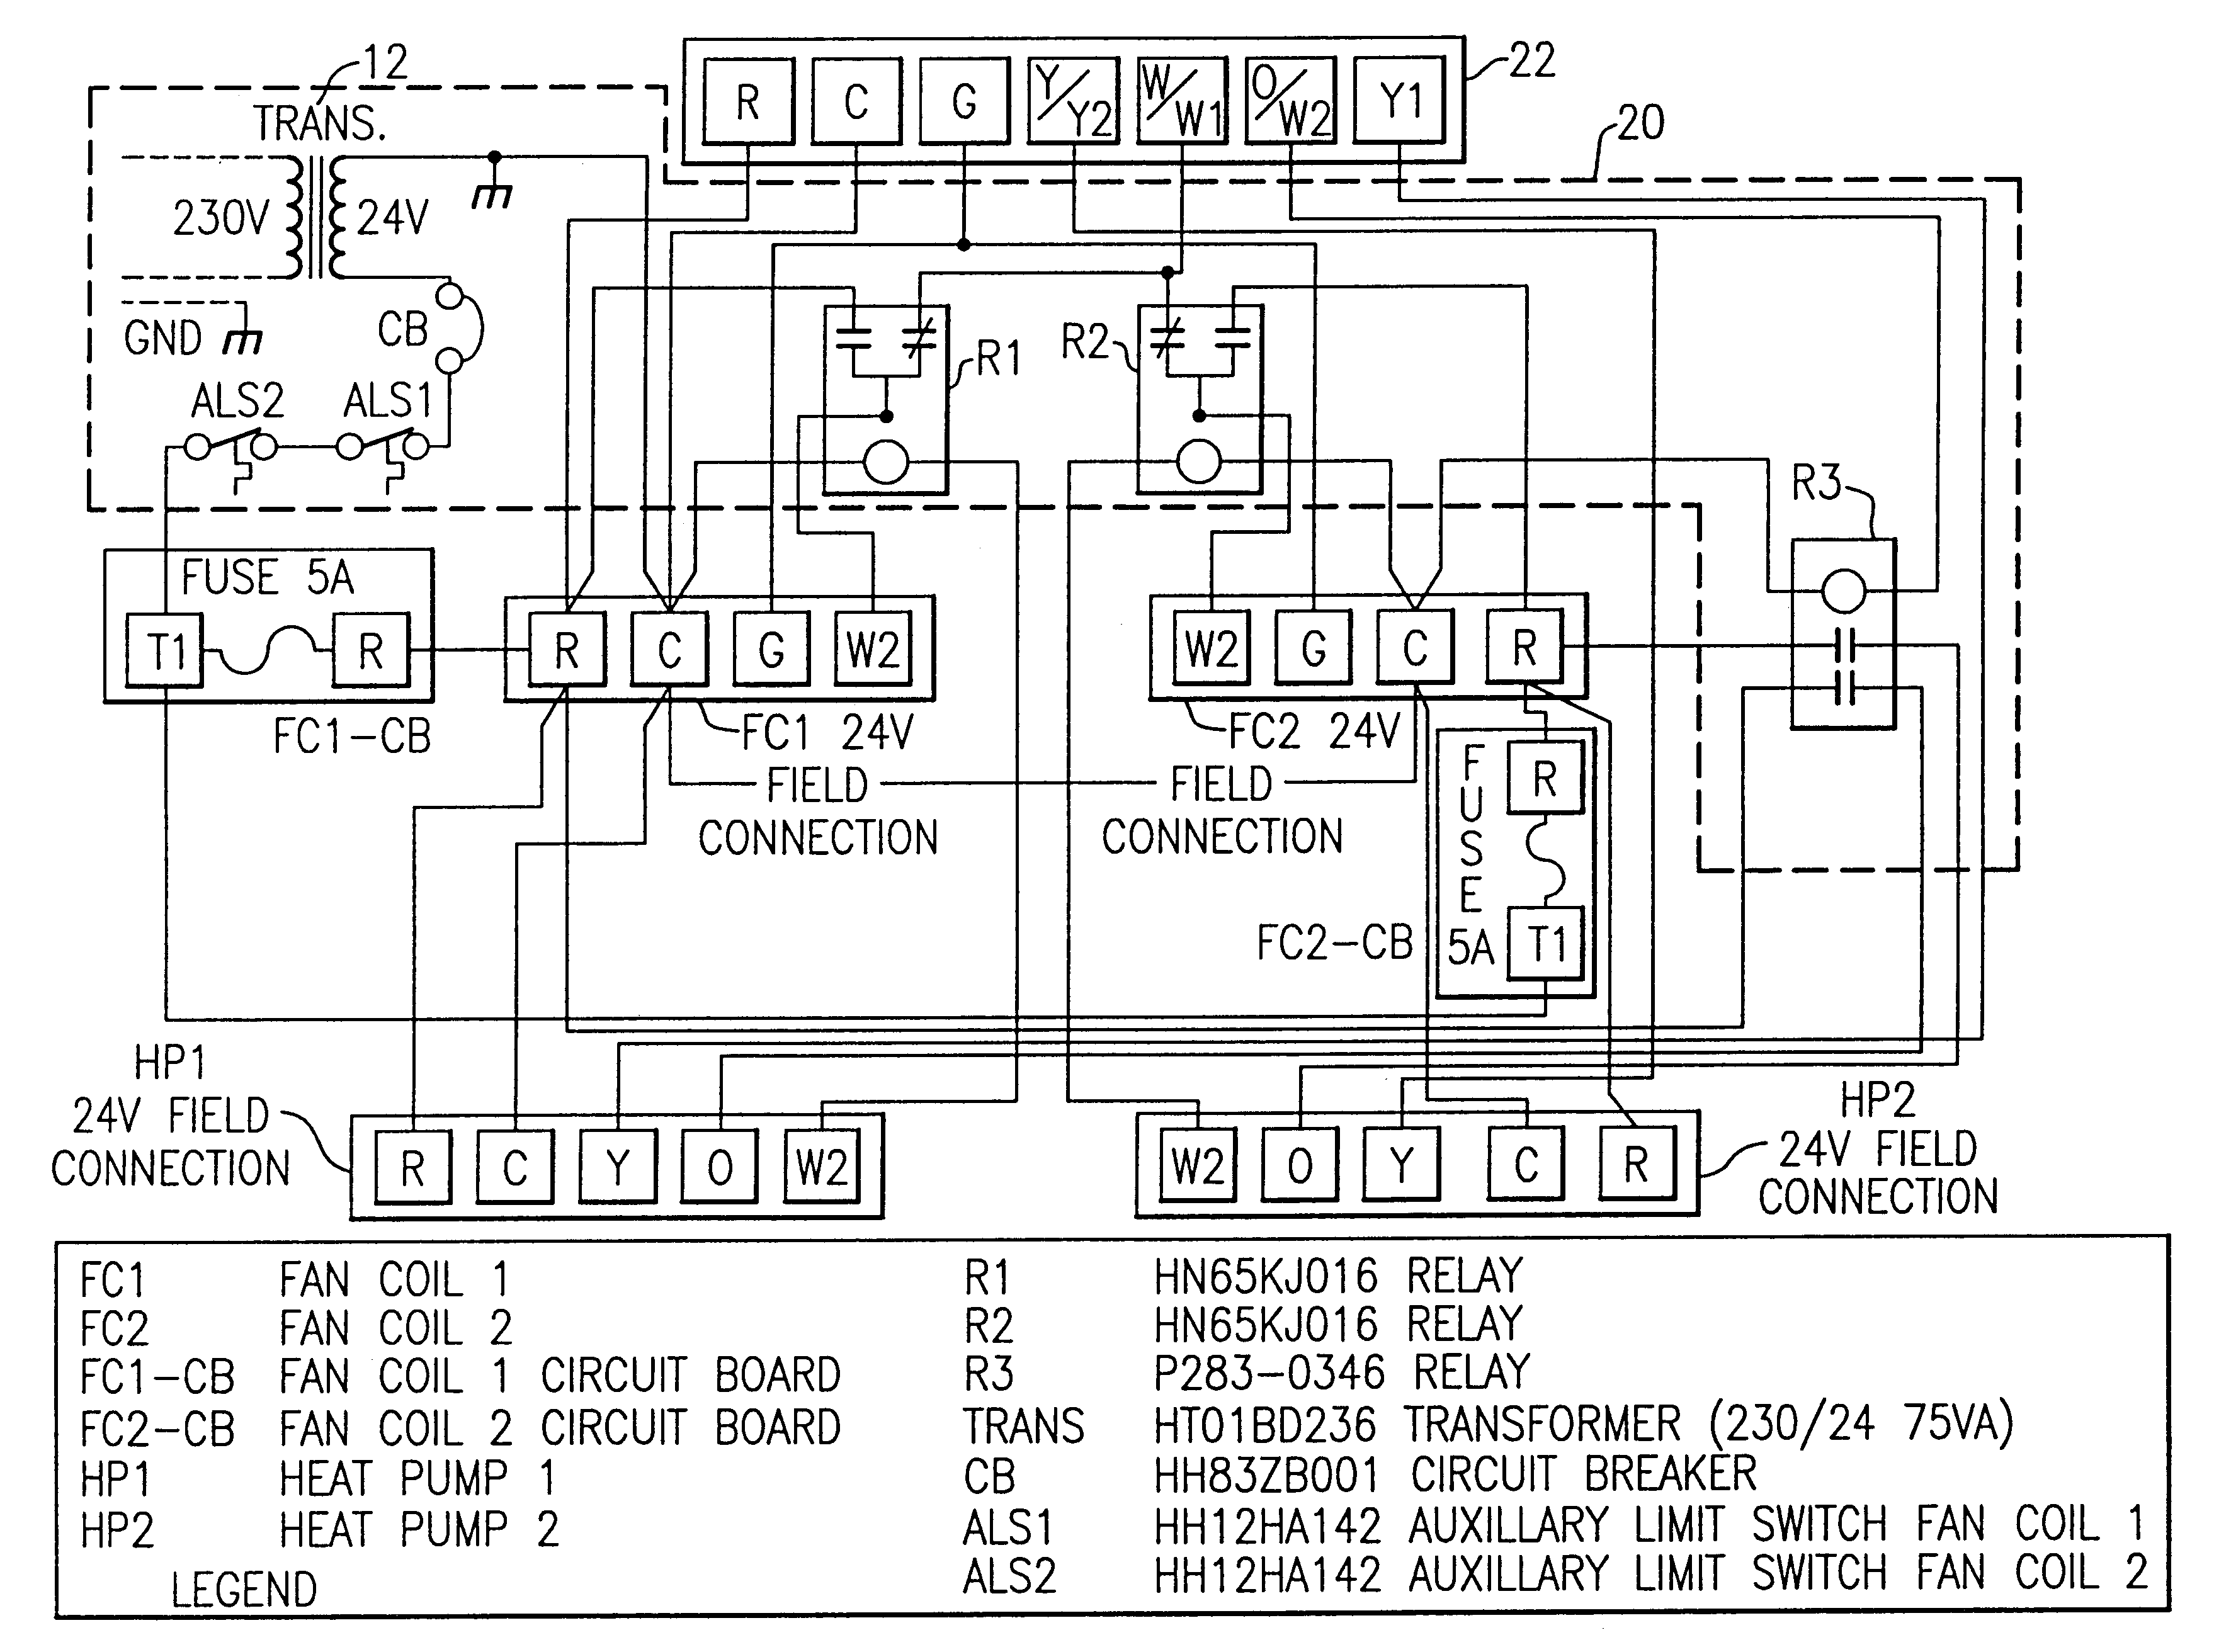 York Economizer Wiring Diagram 30 Images Honeywell Generator Us06606871 20030819 D00000 For Central Air And Heat The